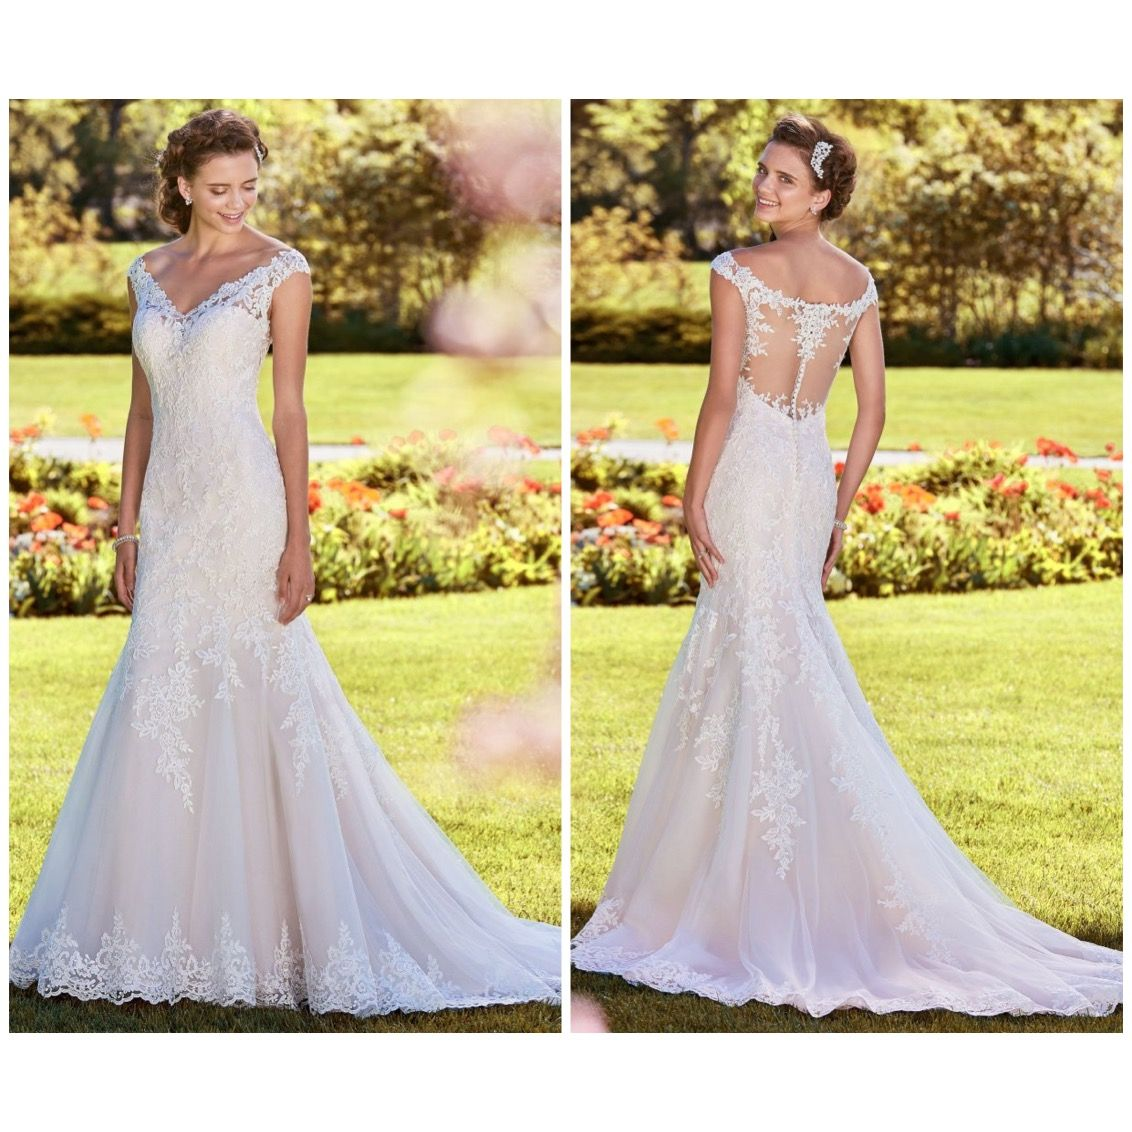 Size 24 wedding dress  Rebecca Ingram  Size  in store  Plus Size Wedding Gowns All